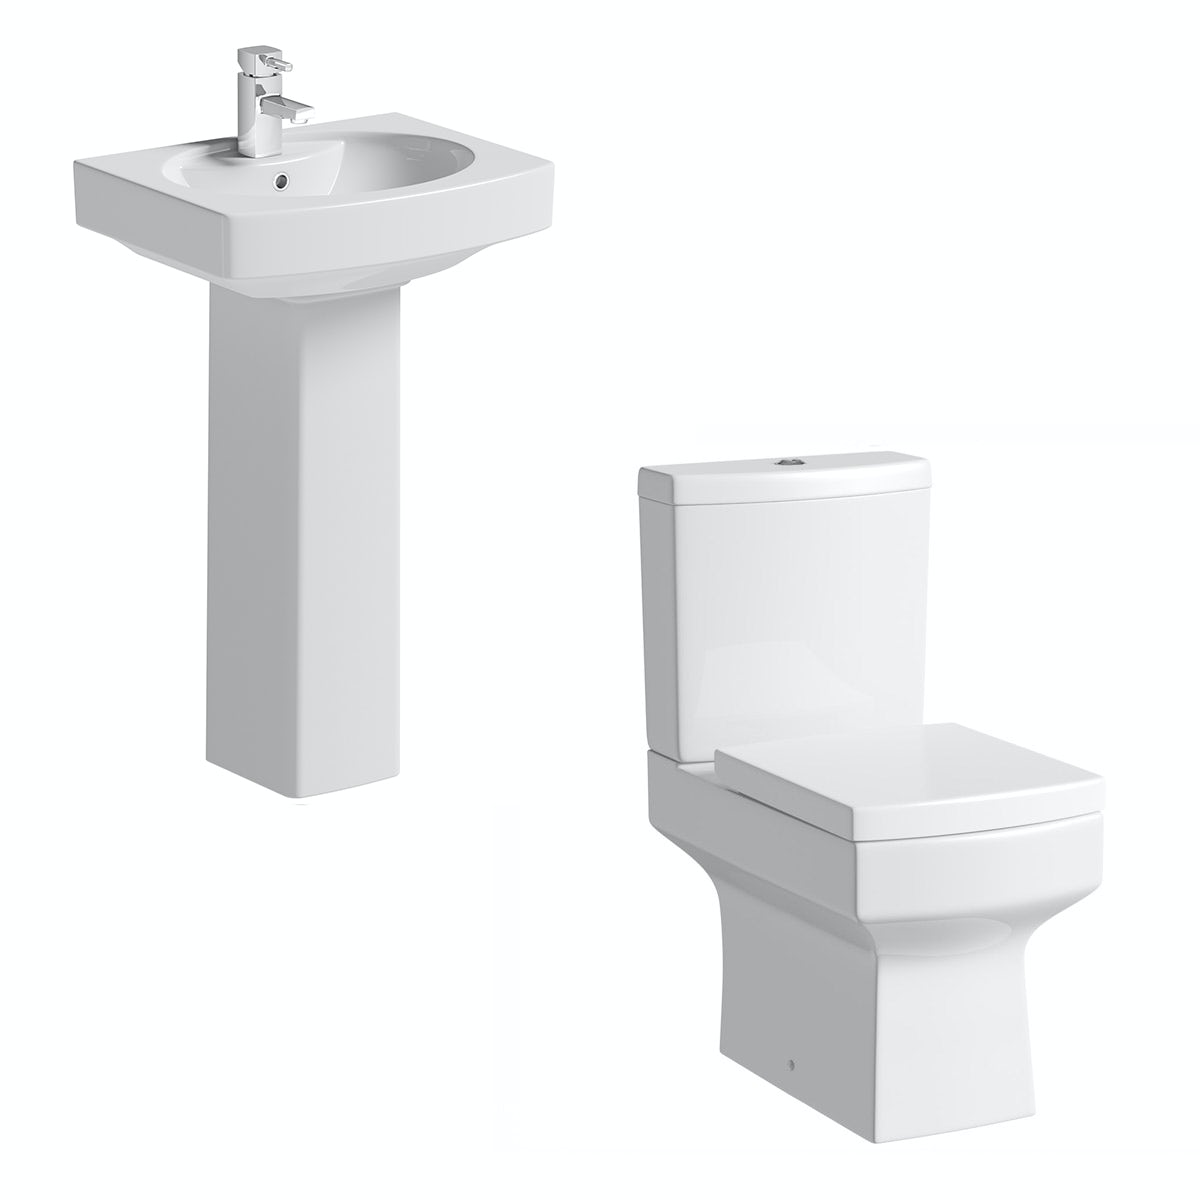 Orchard Wye cloakroom suite with full pedestal basin 555mm